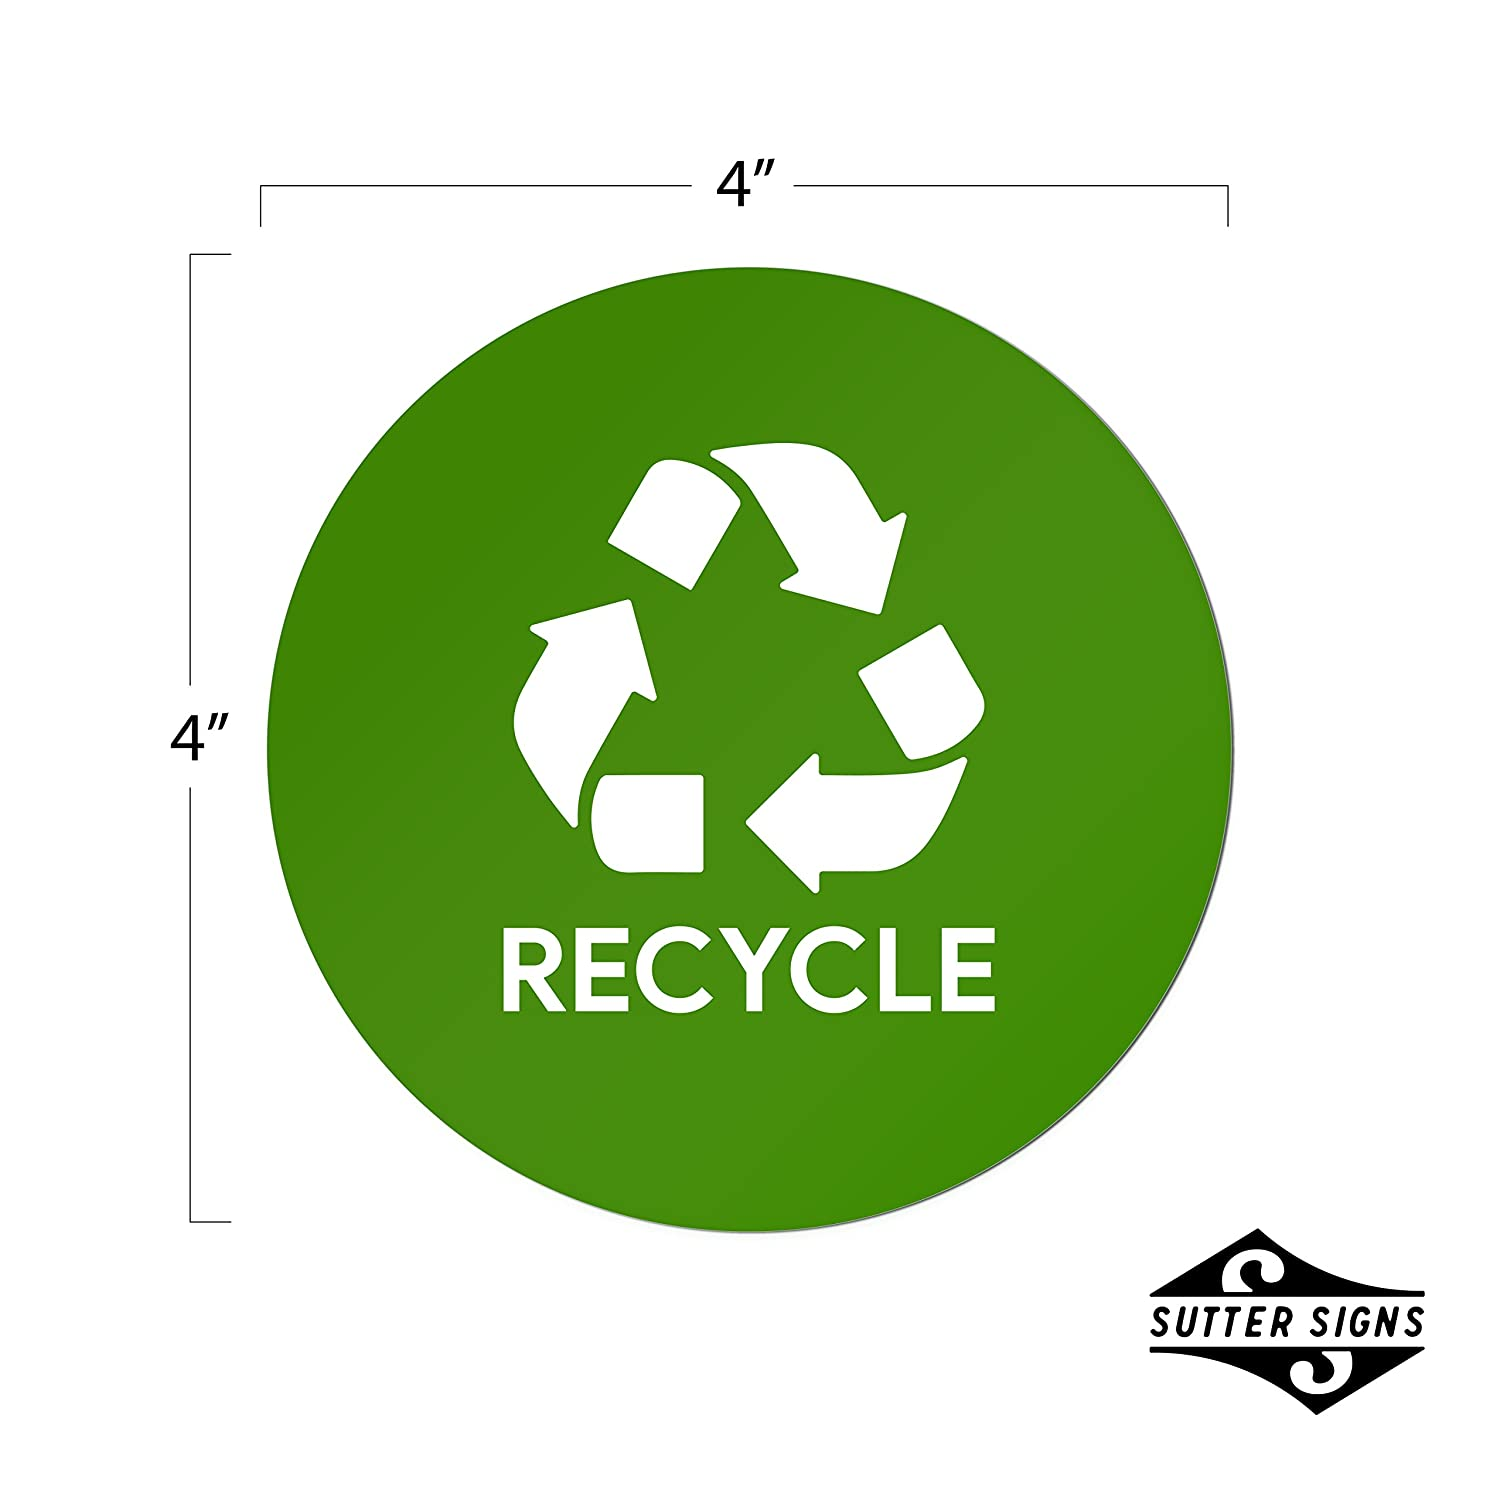 Events 2 Stickers of Each Businesses Sutter Signs Recycle /& Trash Garbage Sticker Set for Offices